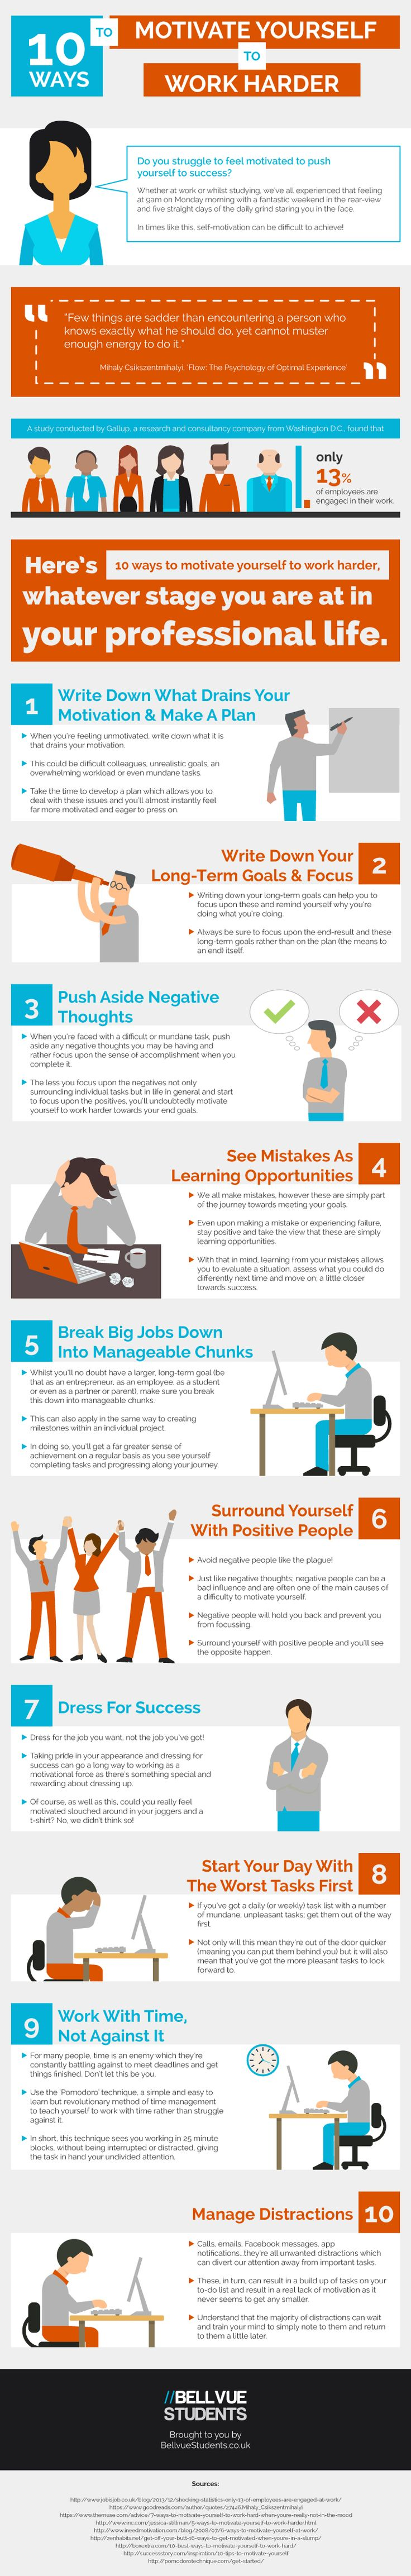 10 steps how to use stress to increase your productivity motivate - 10 Best Ways To Motivate Yourself To Work Harder